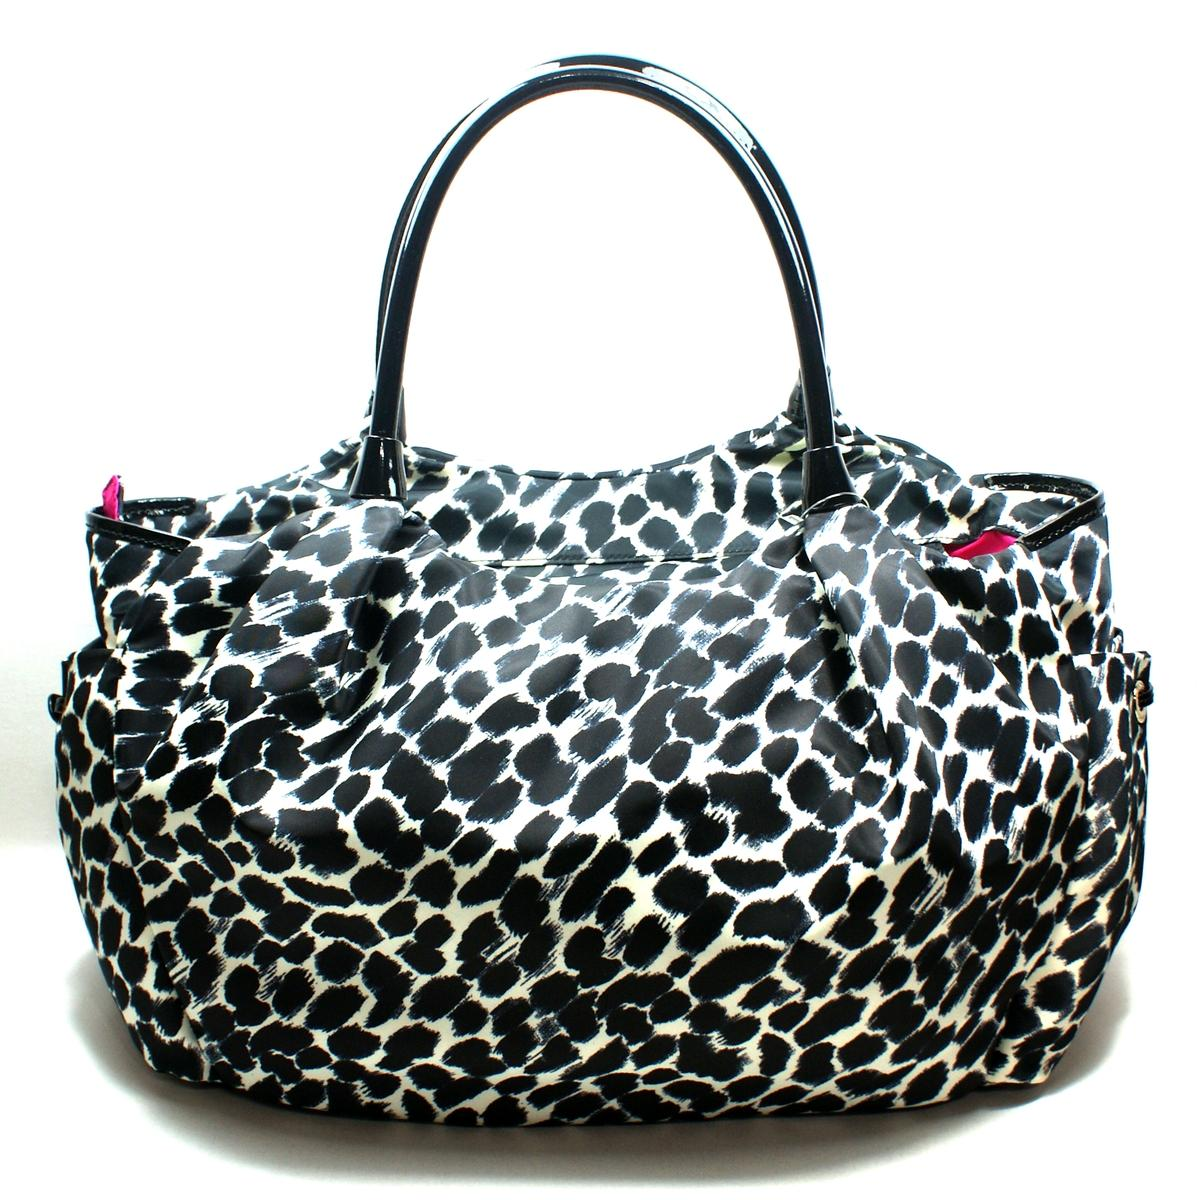 kate spade stevie baby bag lindenwood leopard diaper bag shoulder bag wkru1633 kate spade. Black Bedroom Furniture Sets. Home Design Ideas